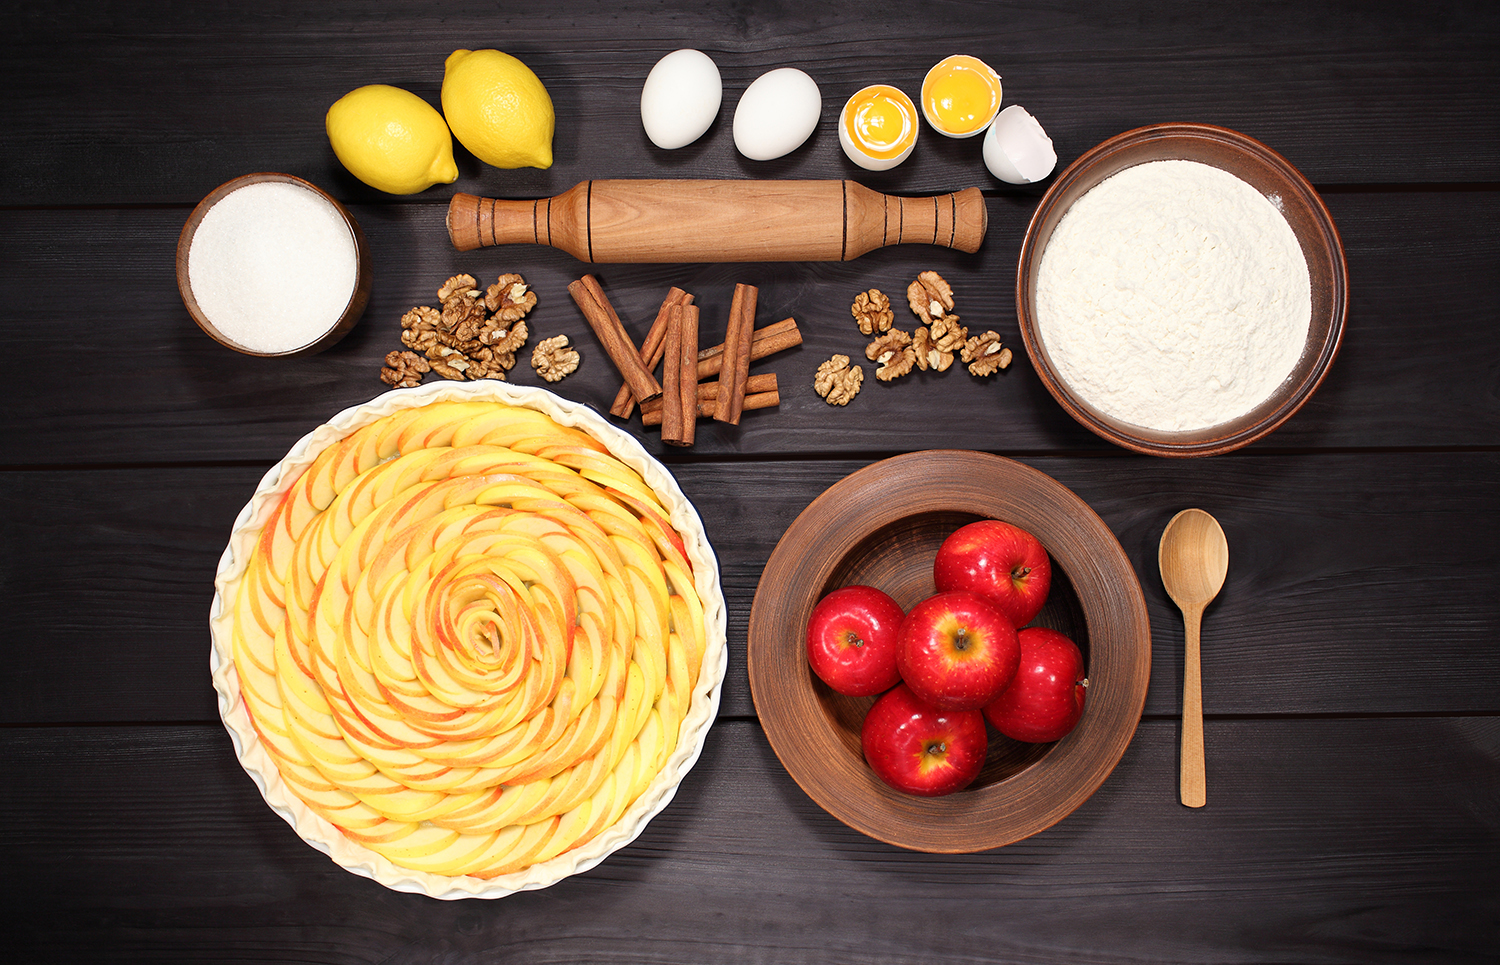 Set 12 photos Apple Pie and raw ingredients for baking. Sweet food series. Dessert. Top view example image 6